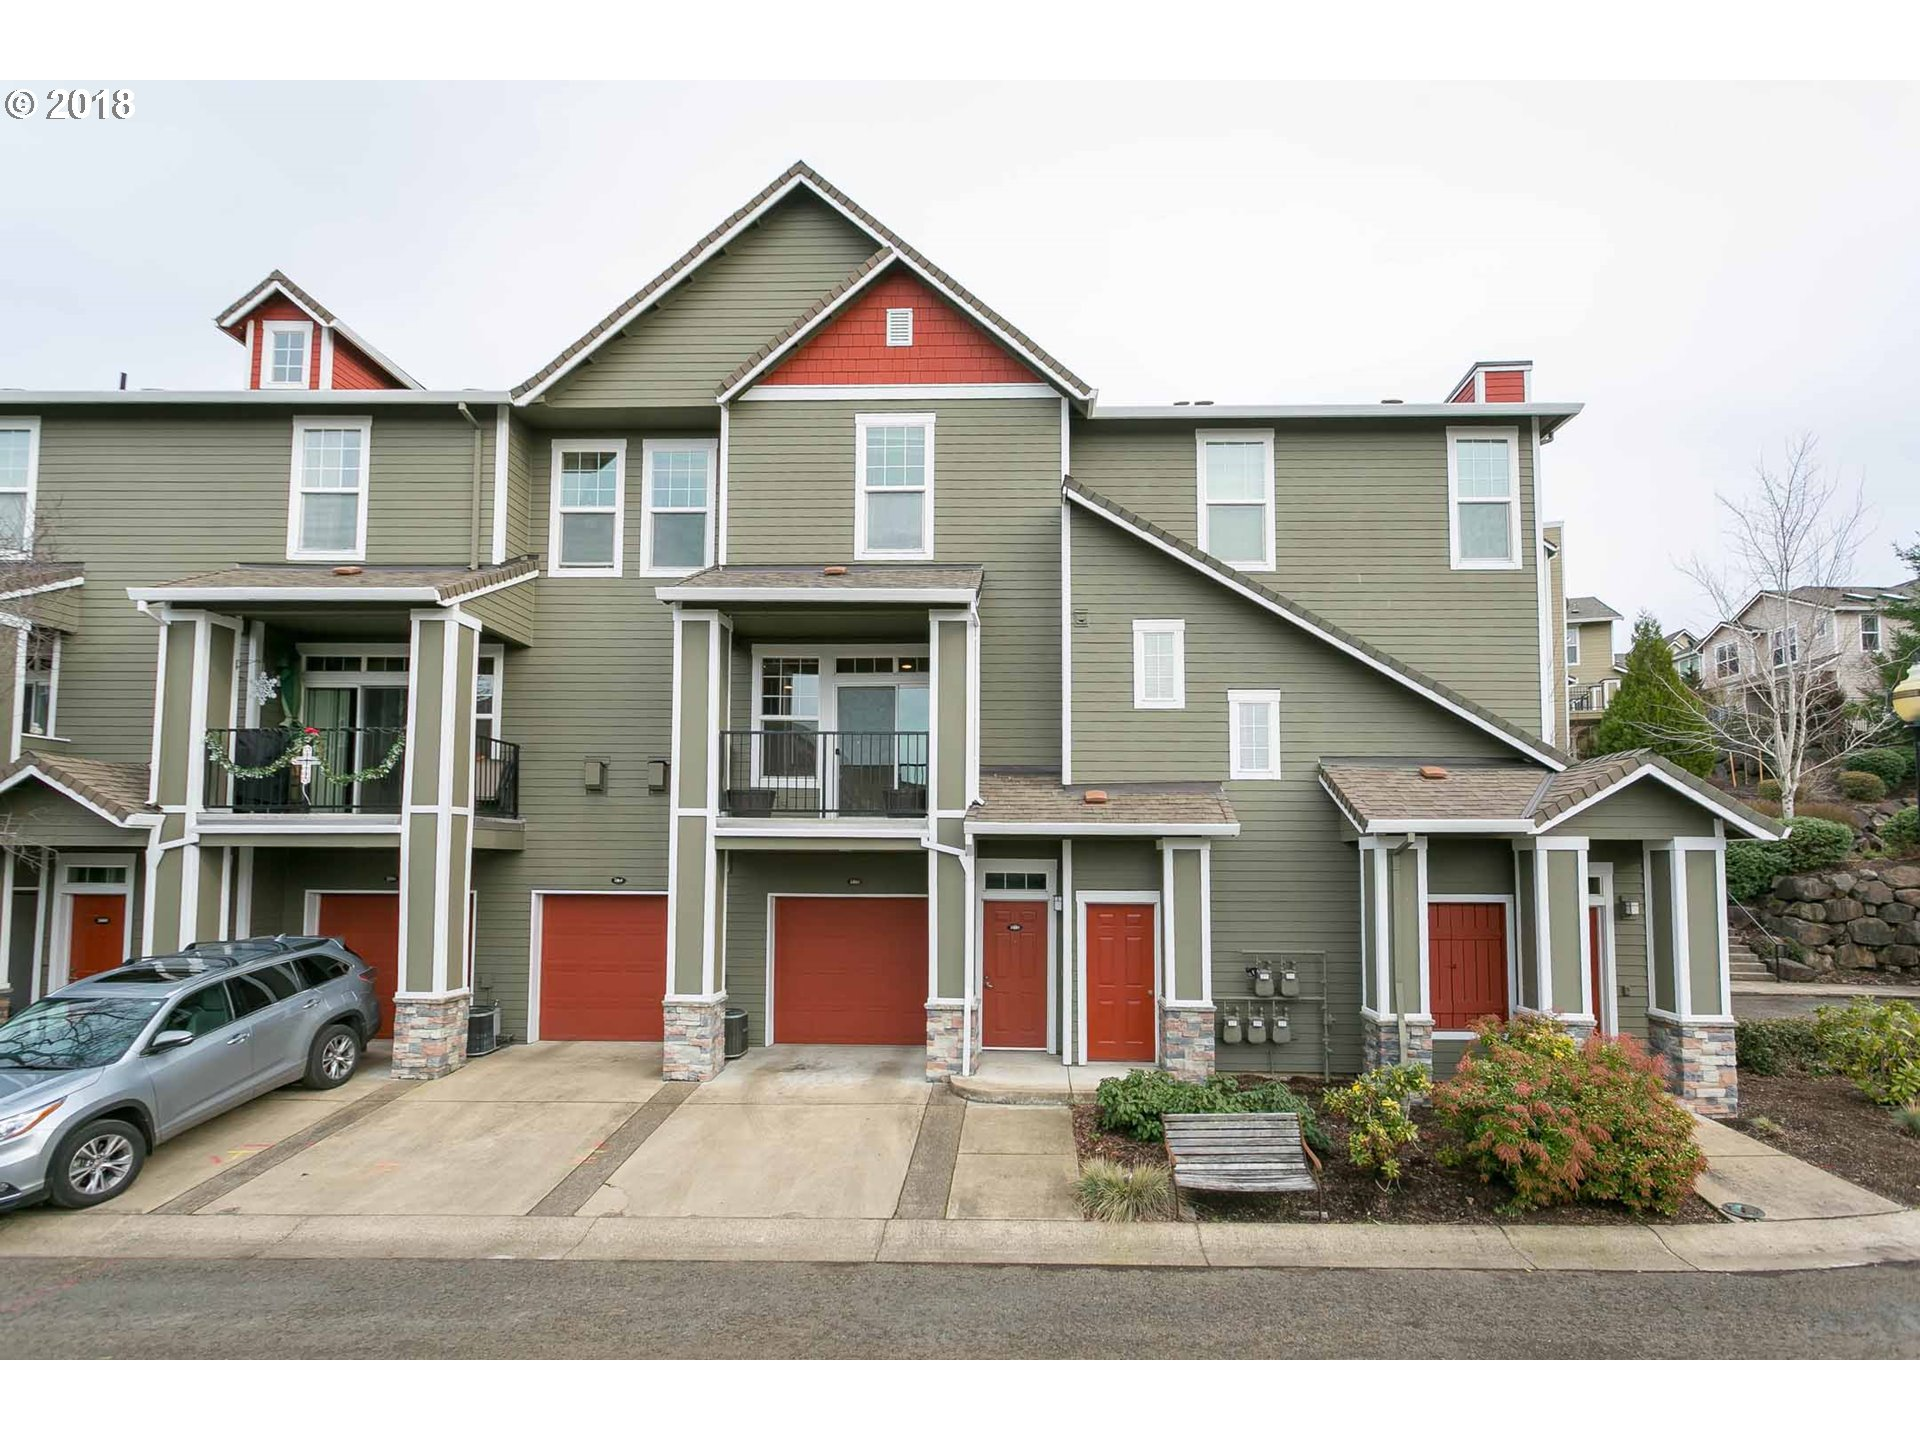 2460 SNOWBERRY RIDGE CT, West Linn, OR 97068